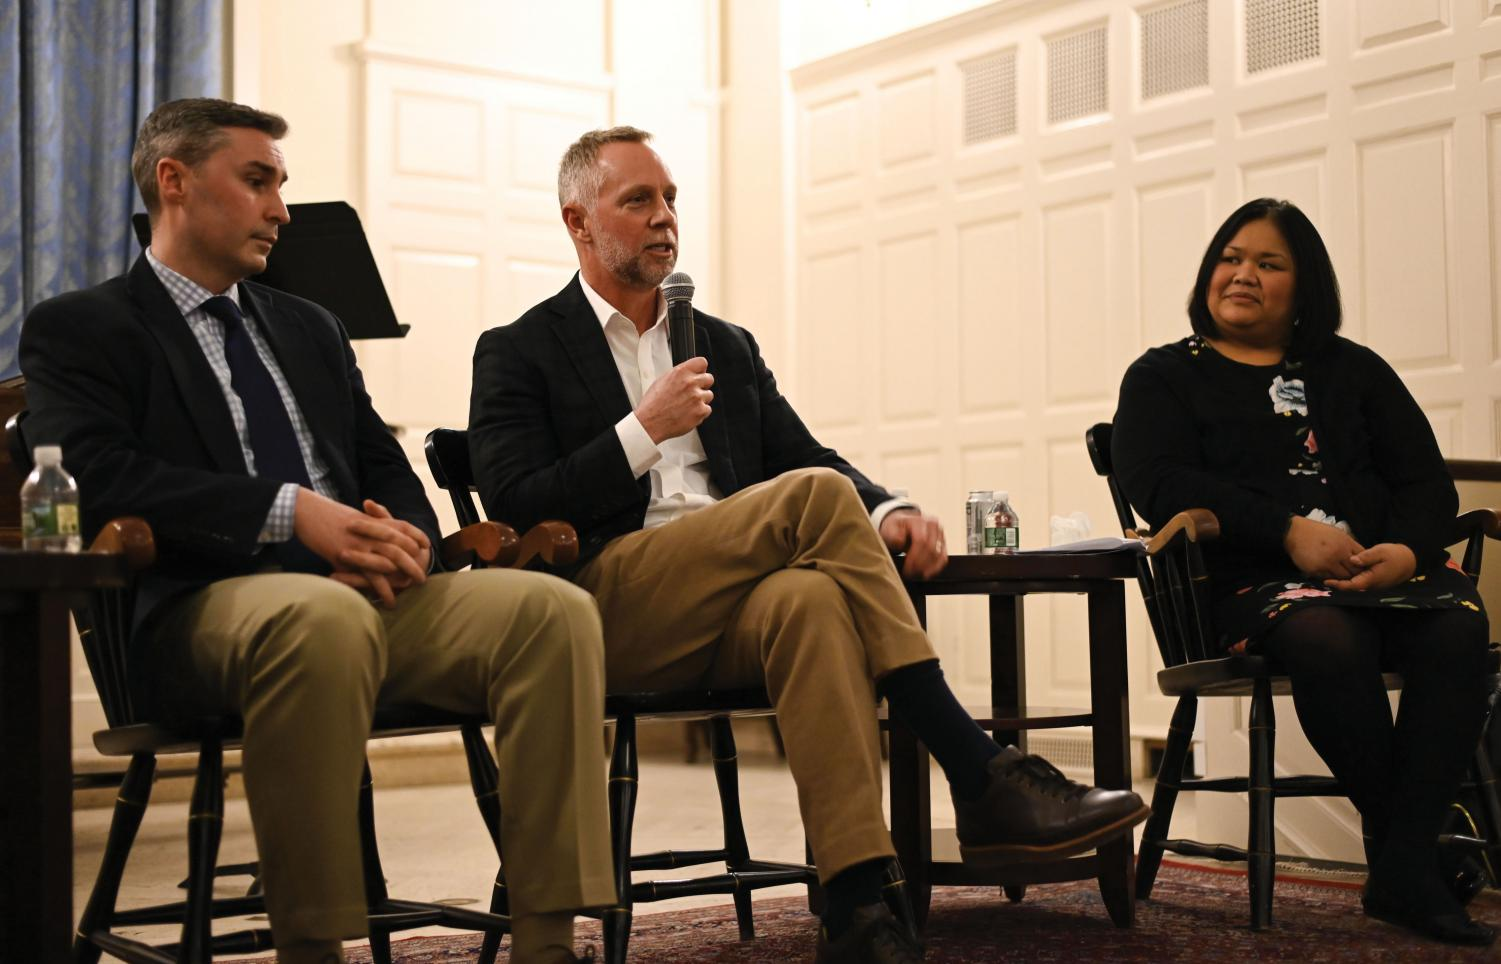 From left: Chris Doyle, director of admission at Marist College, Greg Roberts, dean of admission at the University of Virginia, and Peaches Valdes, dean of admission at Hamilton College, share tips with Upper Mids and their parents.